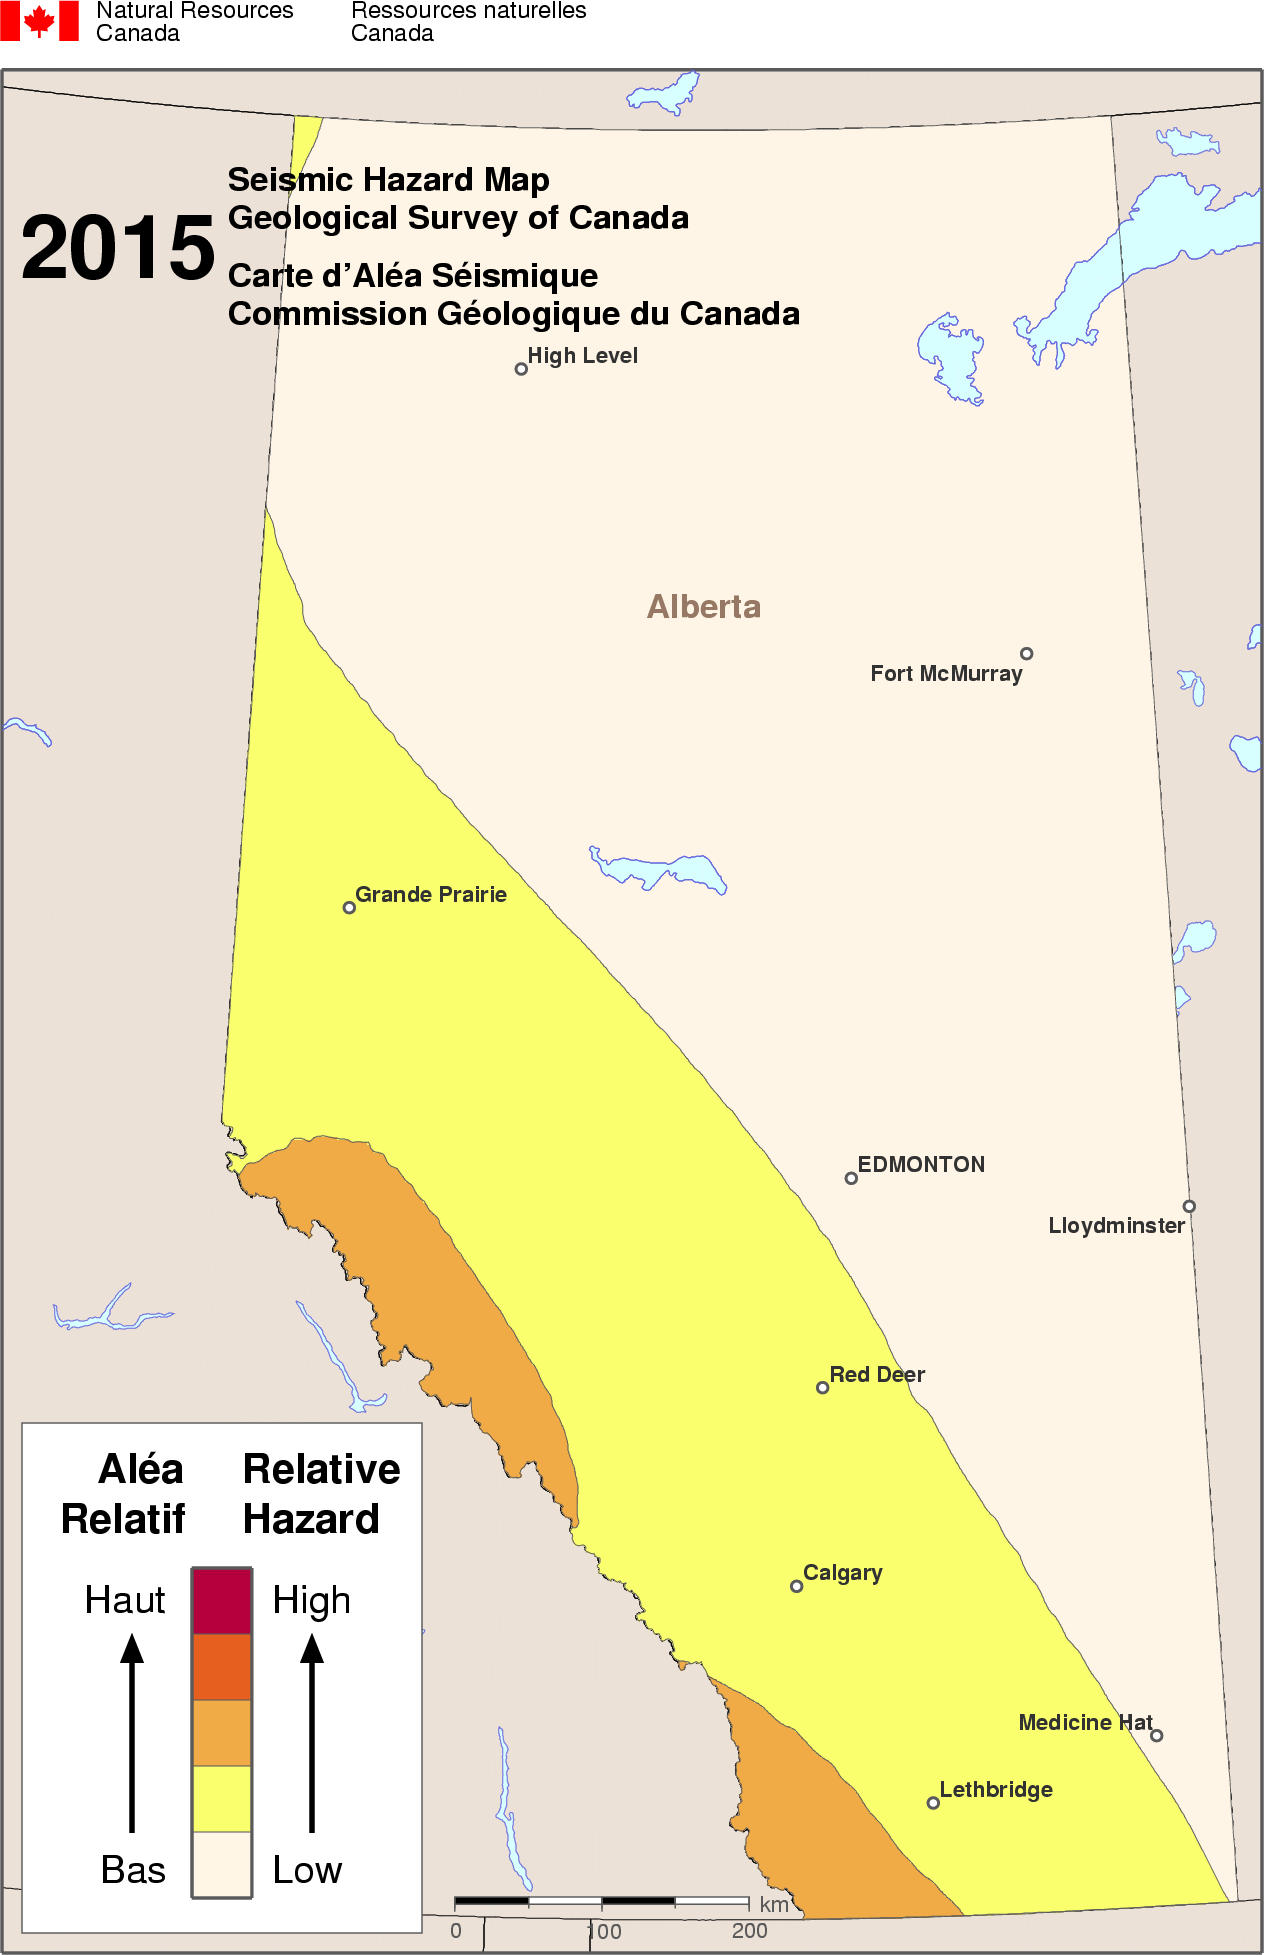 Simplified Seismic Hazard Map For Canada The Provinces And Territories